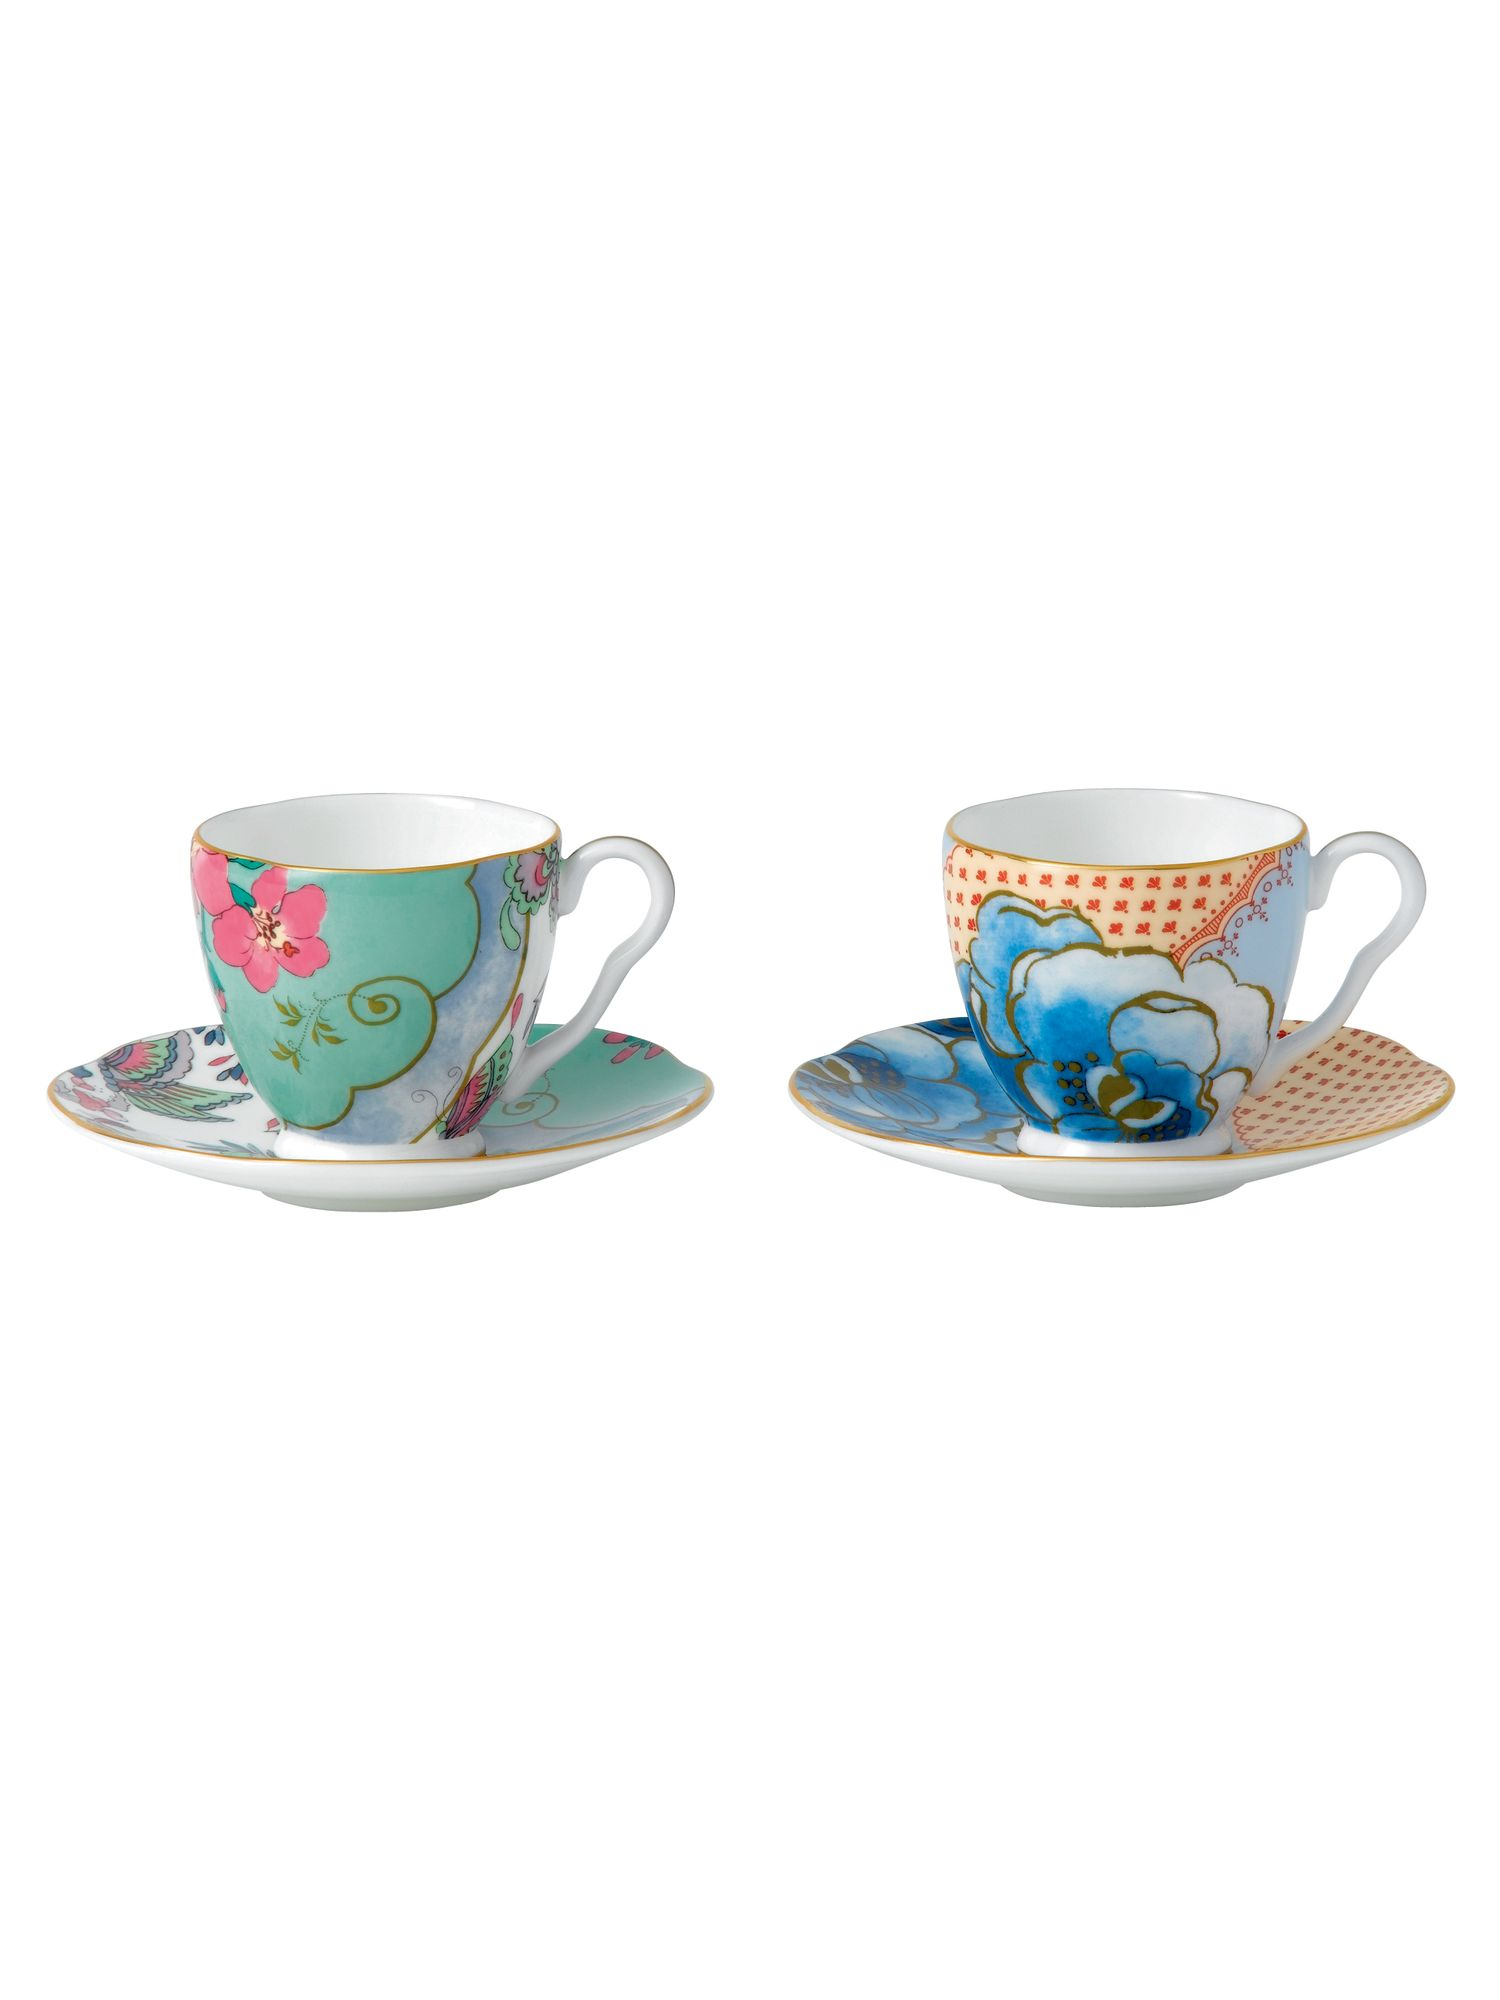 Wedgwood Baby Gifts Uk : Wedgwood butterfly bloom espresso cup and saucer octer